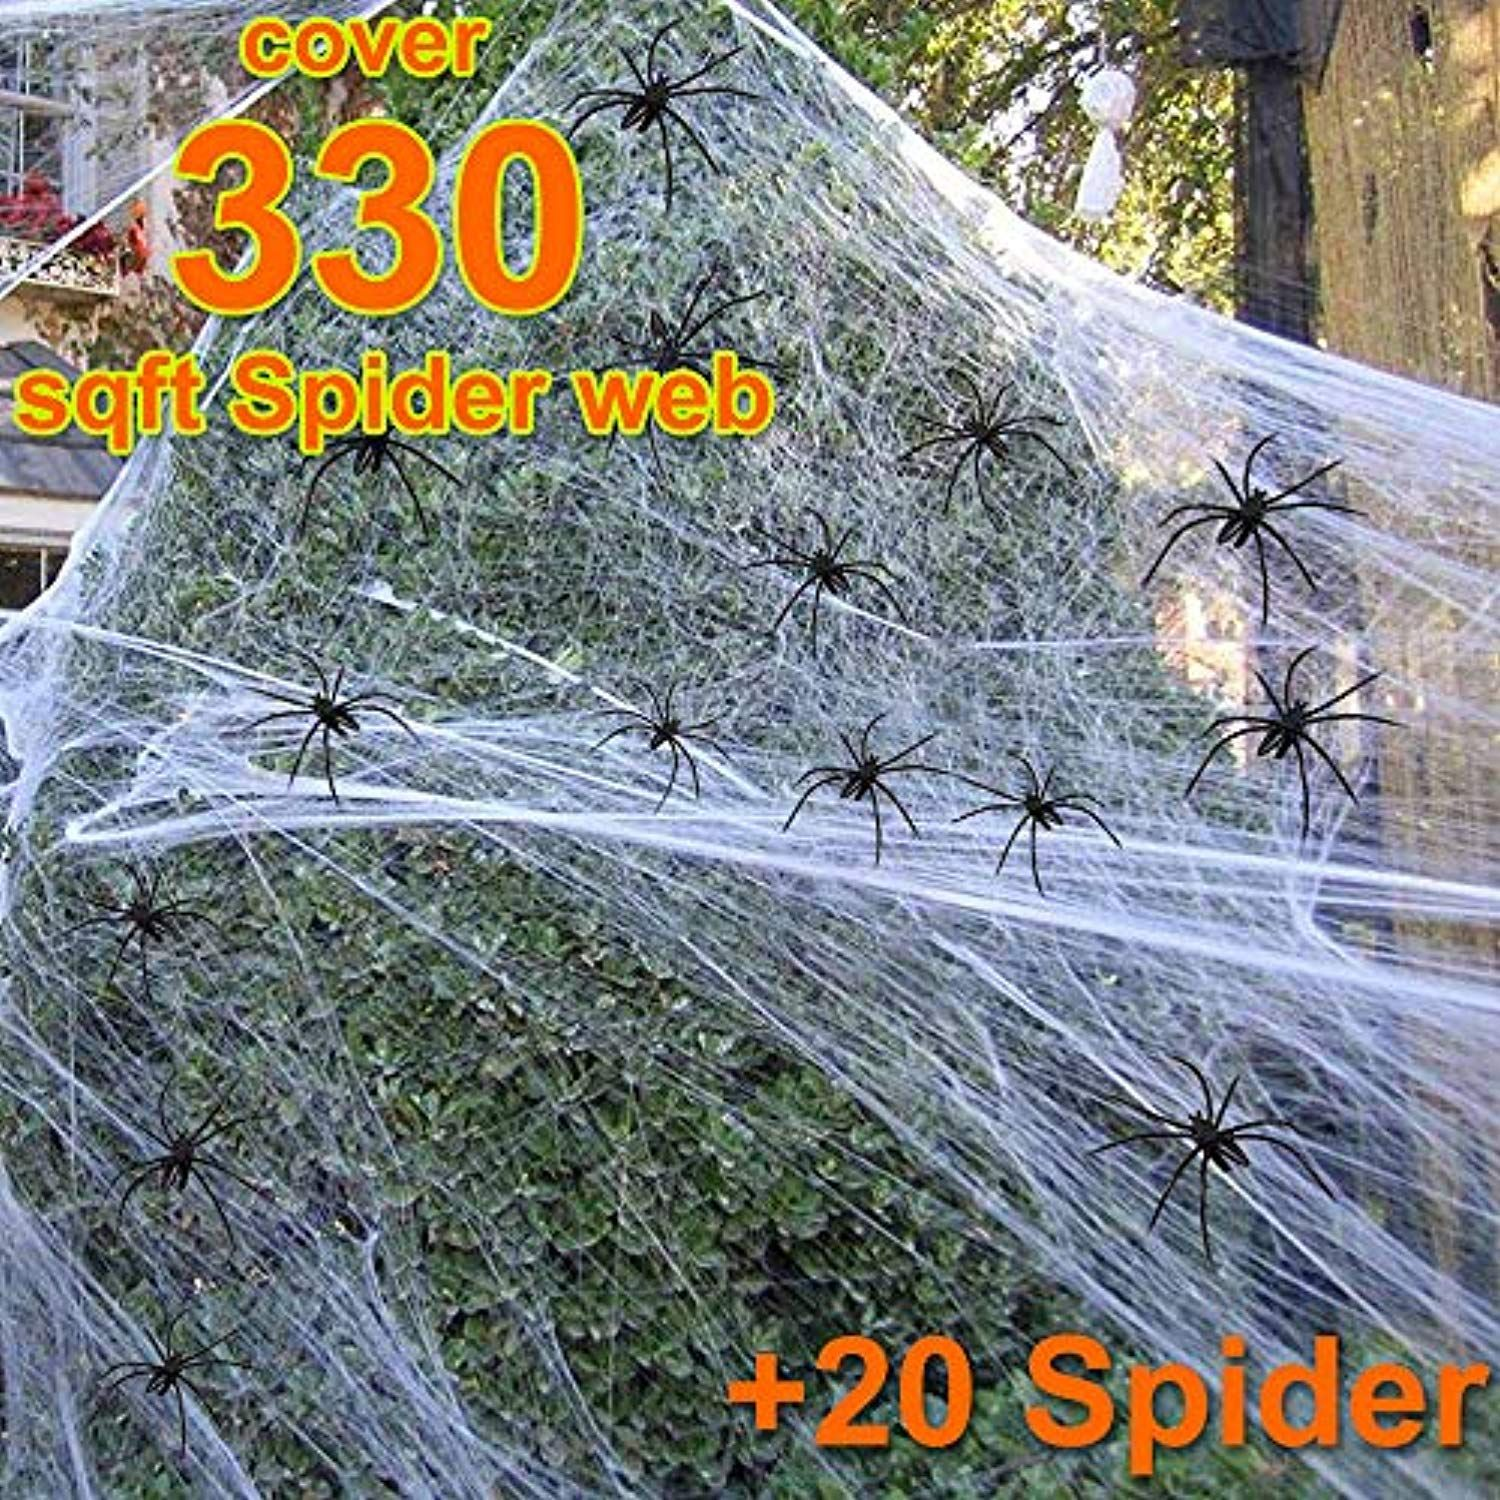 Halloween Spider Web Decorations Props Covered 330sqft